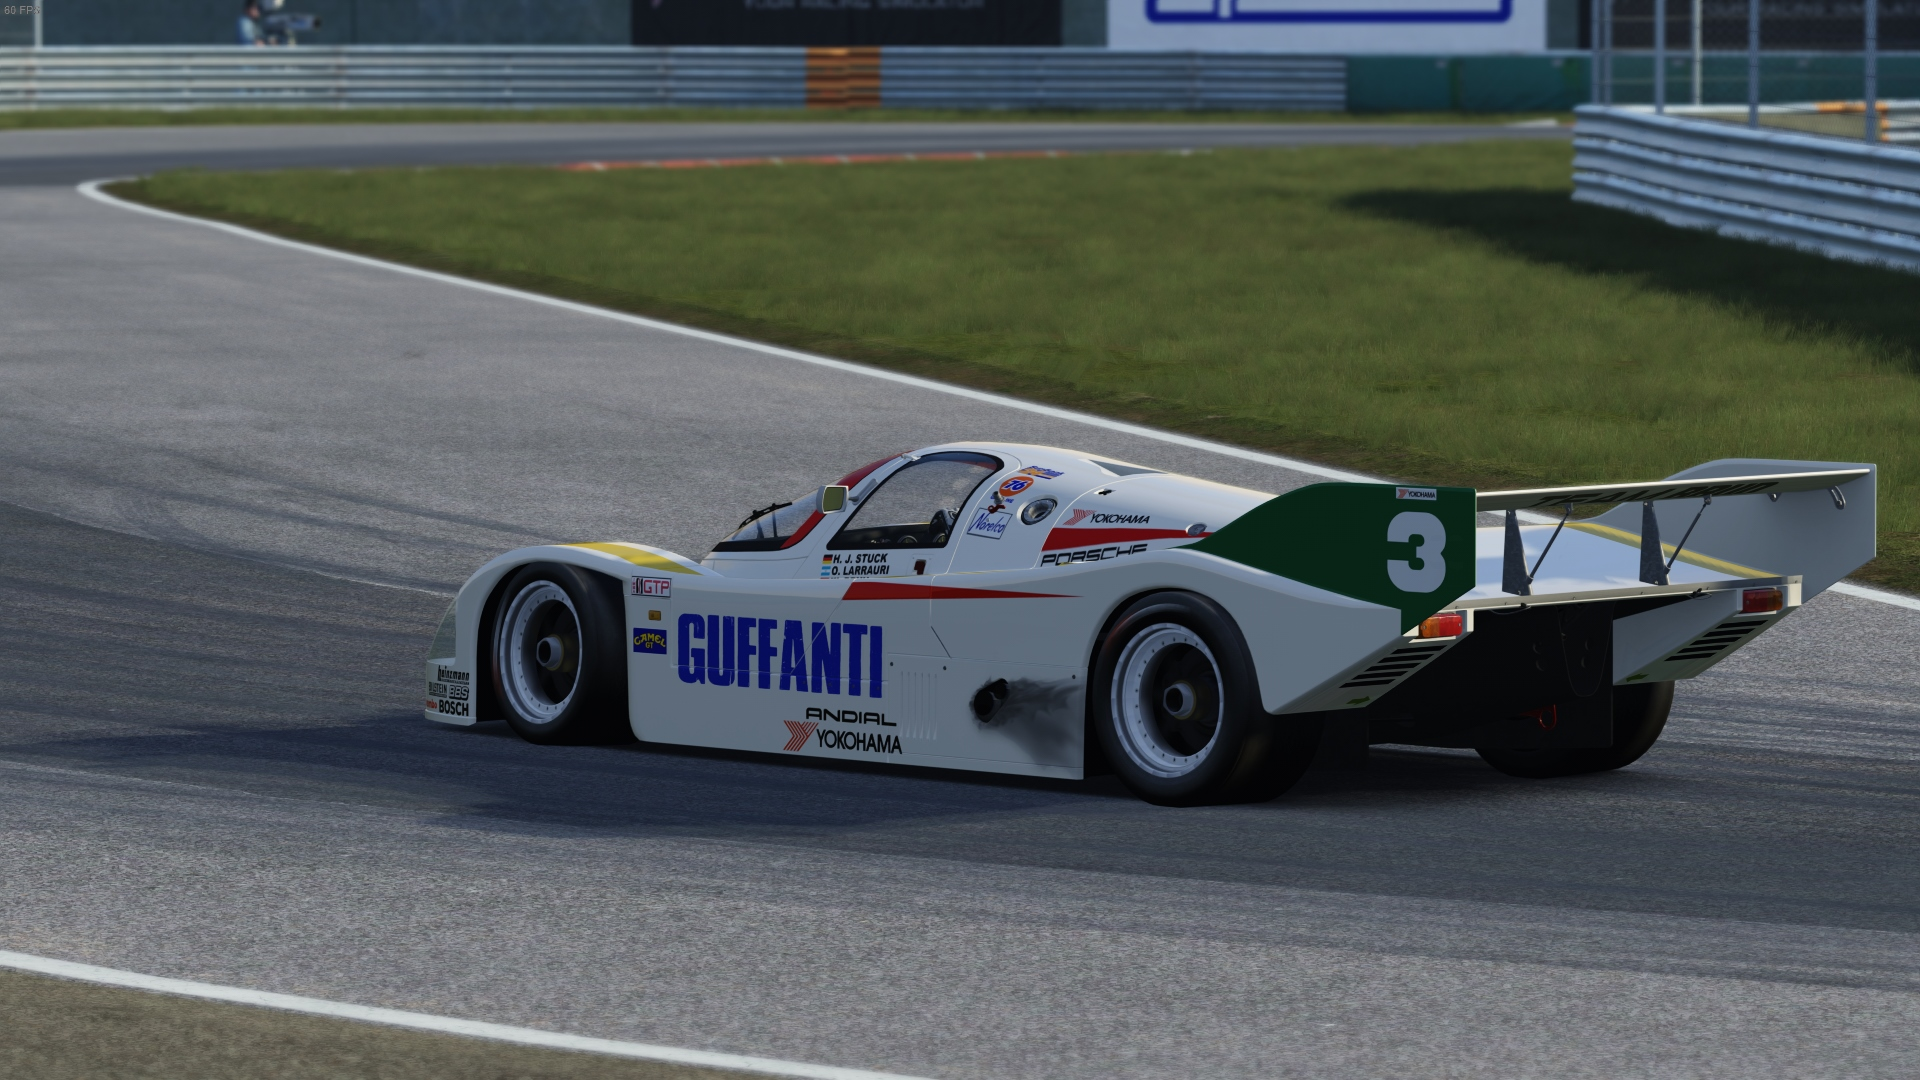 Screenshot_ks_porsche_962c_shorttail_magione_25-1-120-16-24-59 - Kopie.jpg